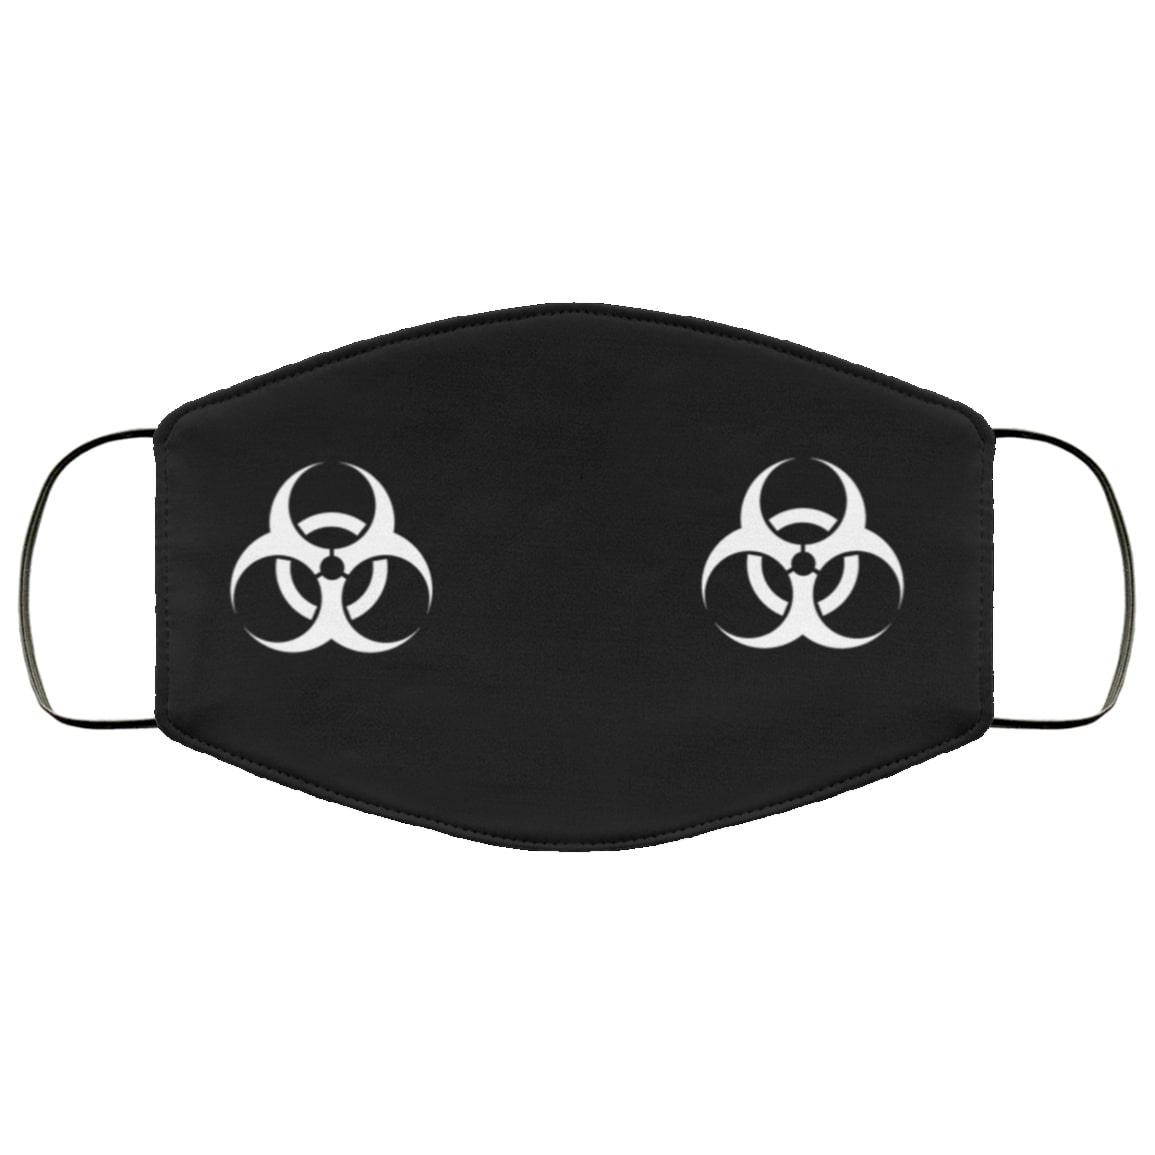 Biological hazard anti pollution face mask 4